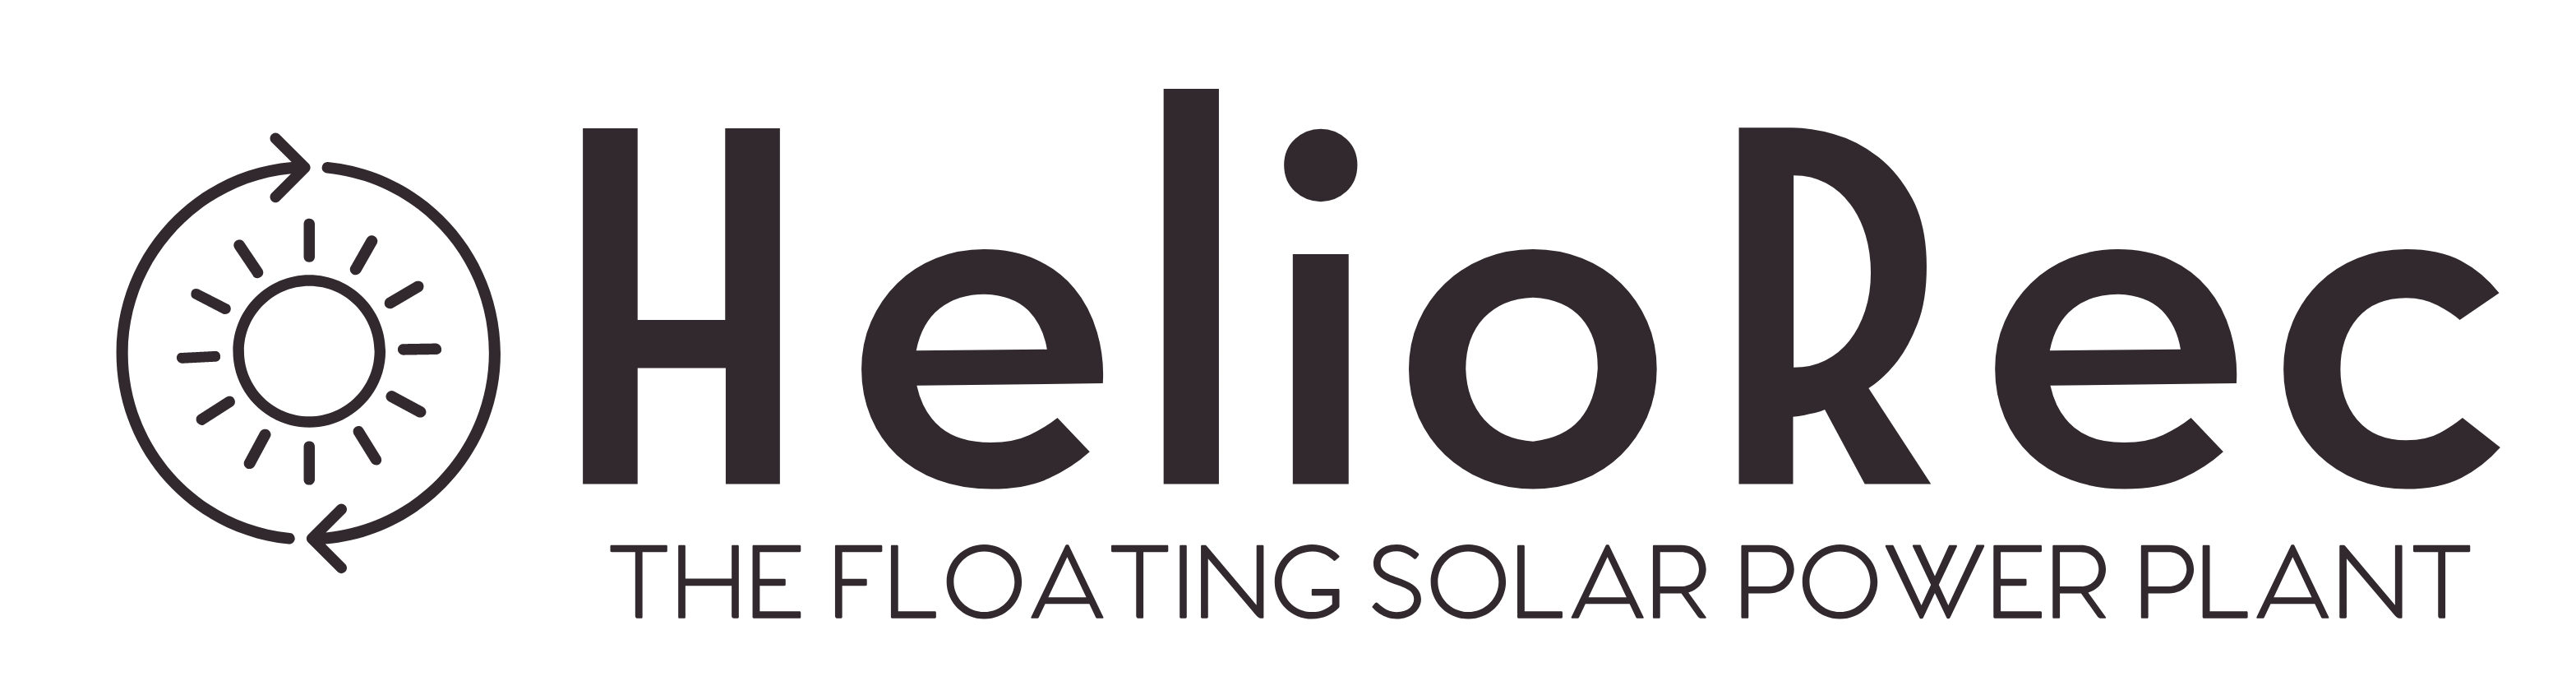 HelioRec: The floating solar power manufactured from